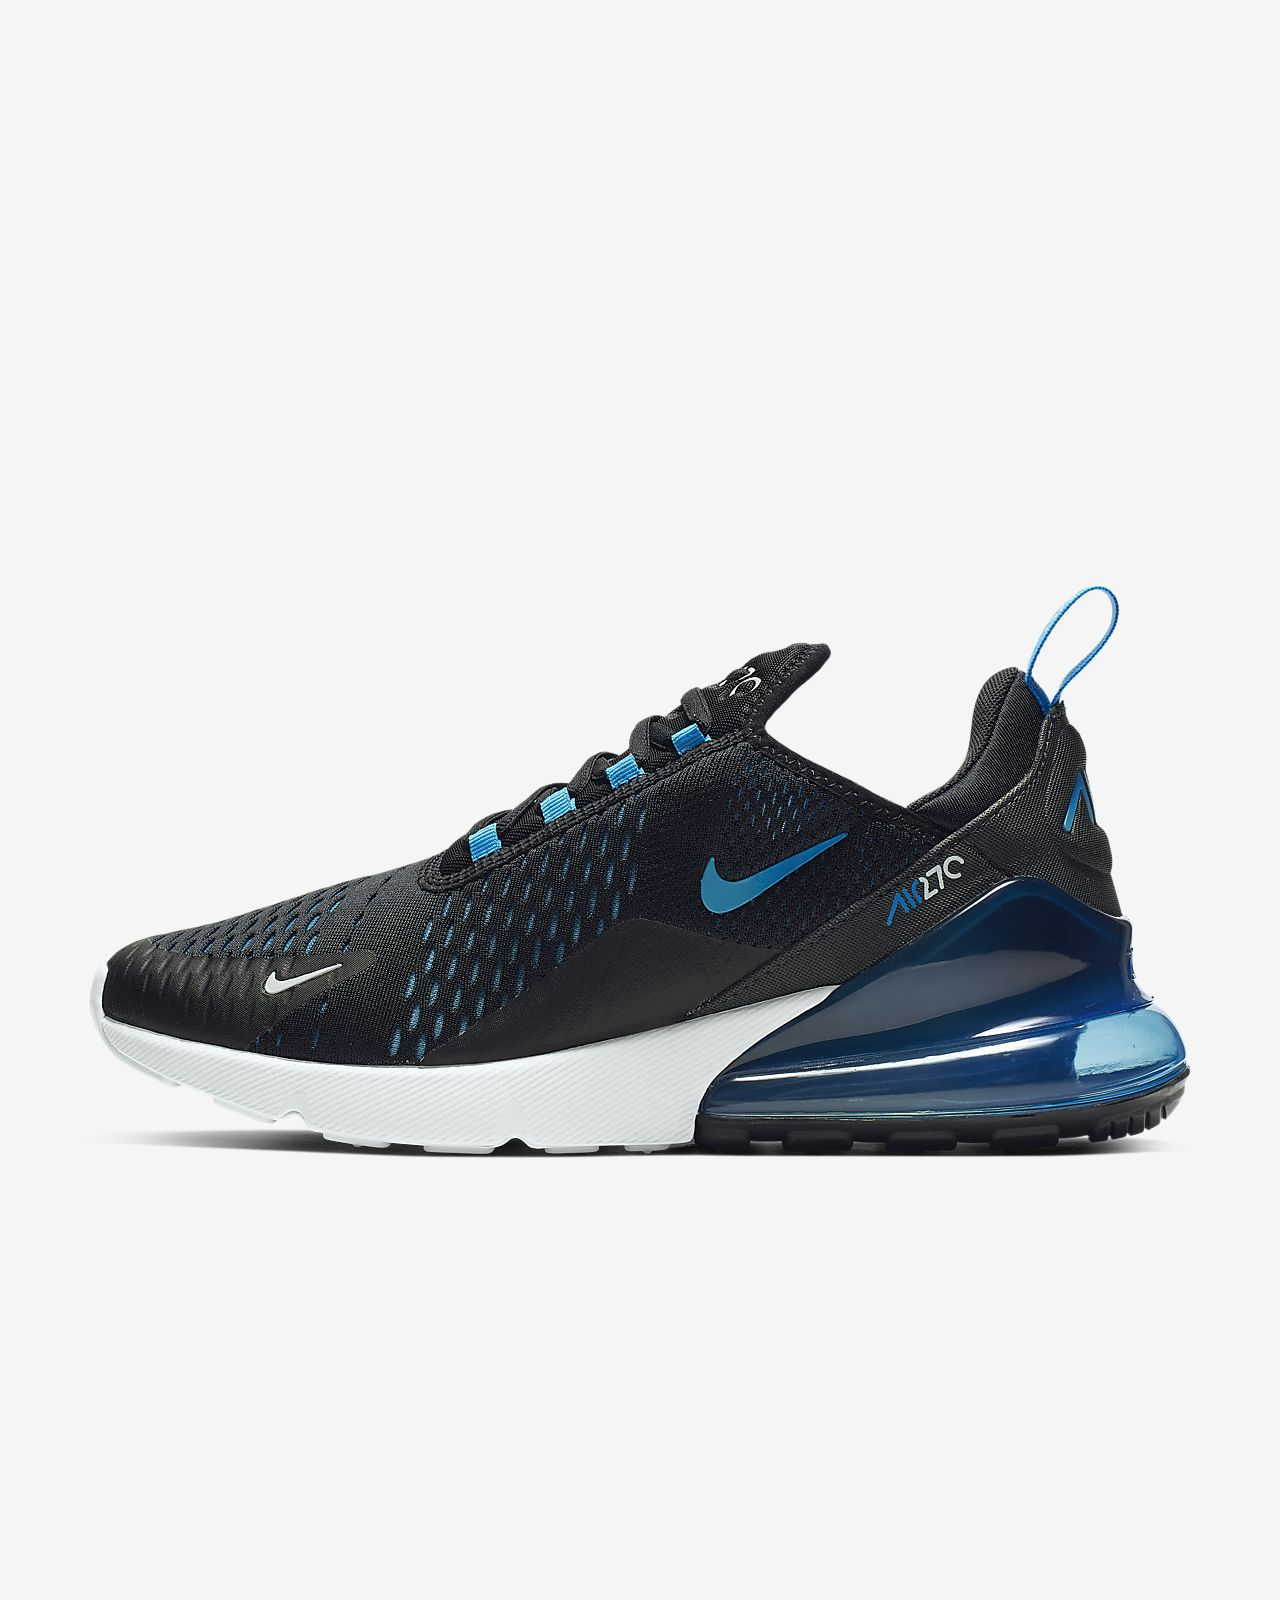 new concept d5e0b 9ff19 ... Nike Air Max 270 Herrenschuh